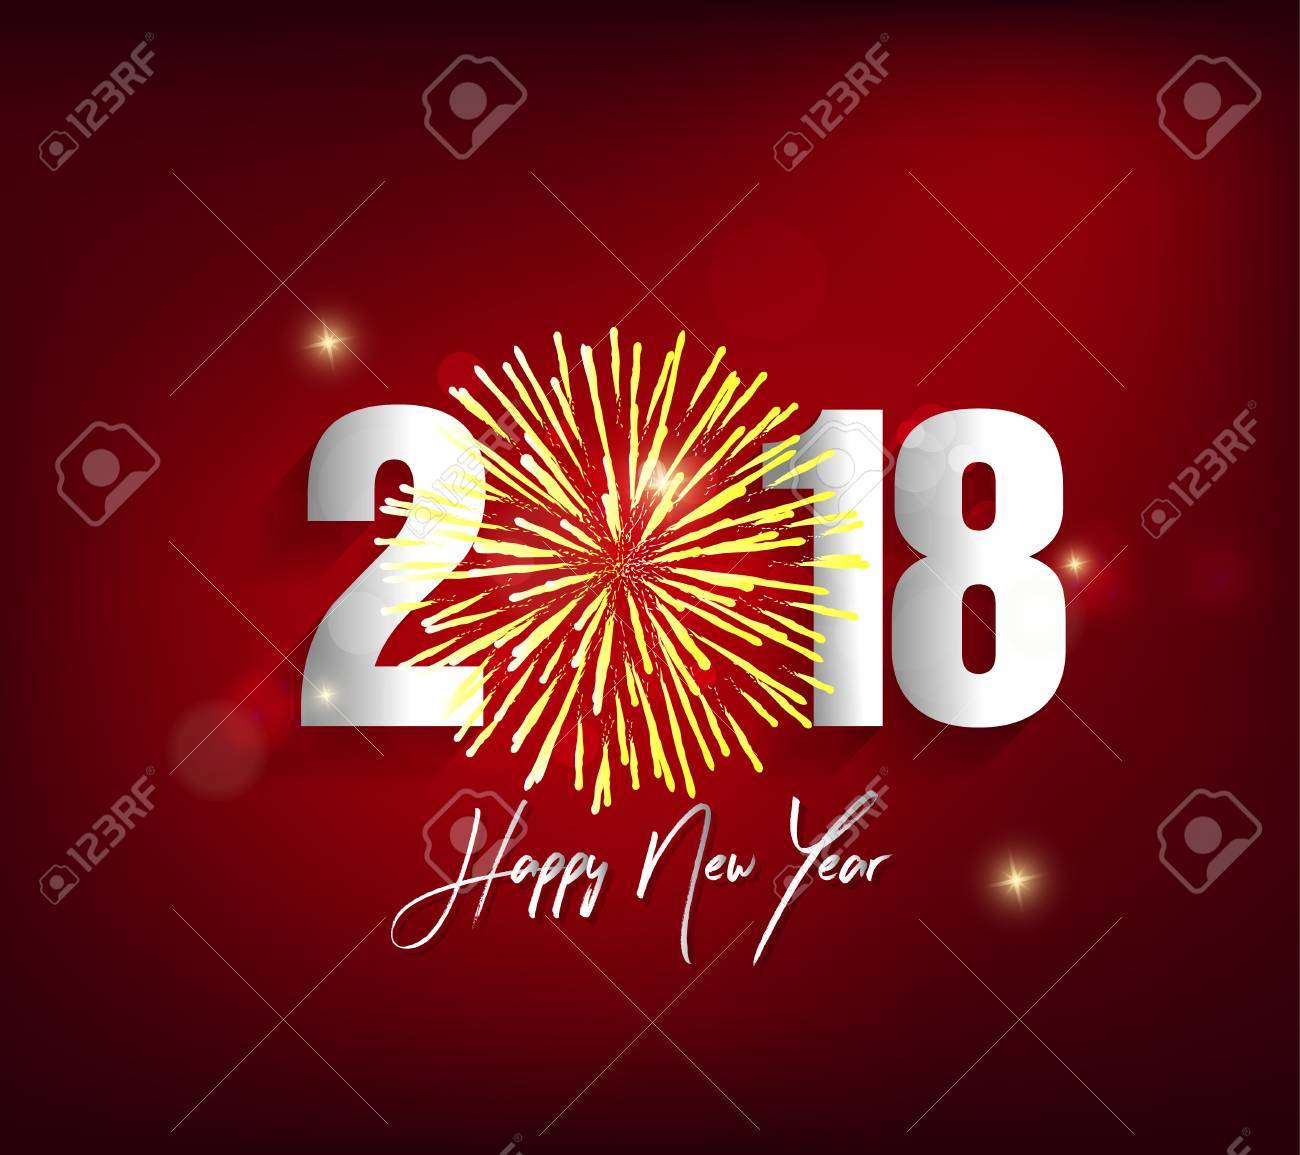 Happy New Year 2018 Greeting Card Design Royalty Free Cliparts